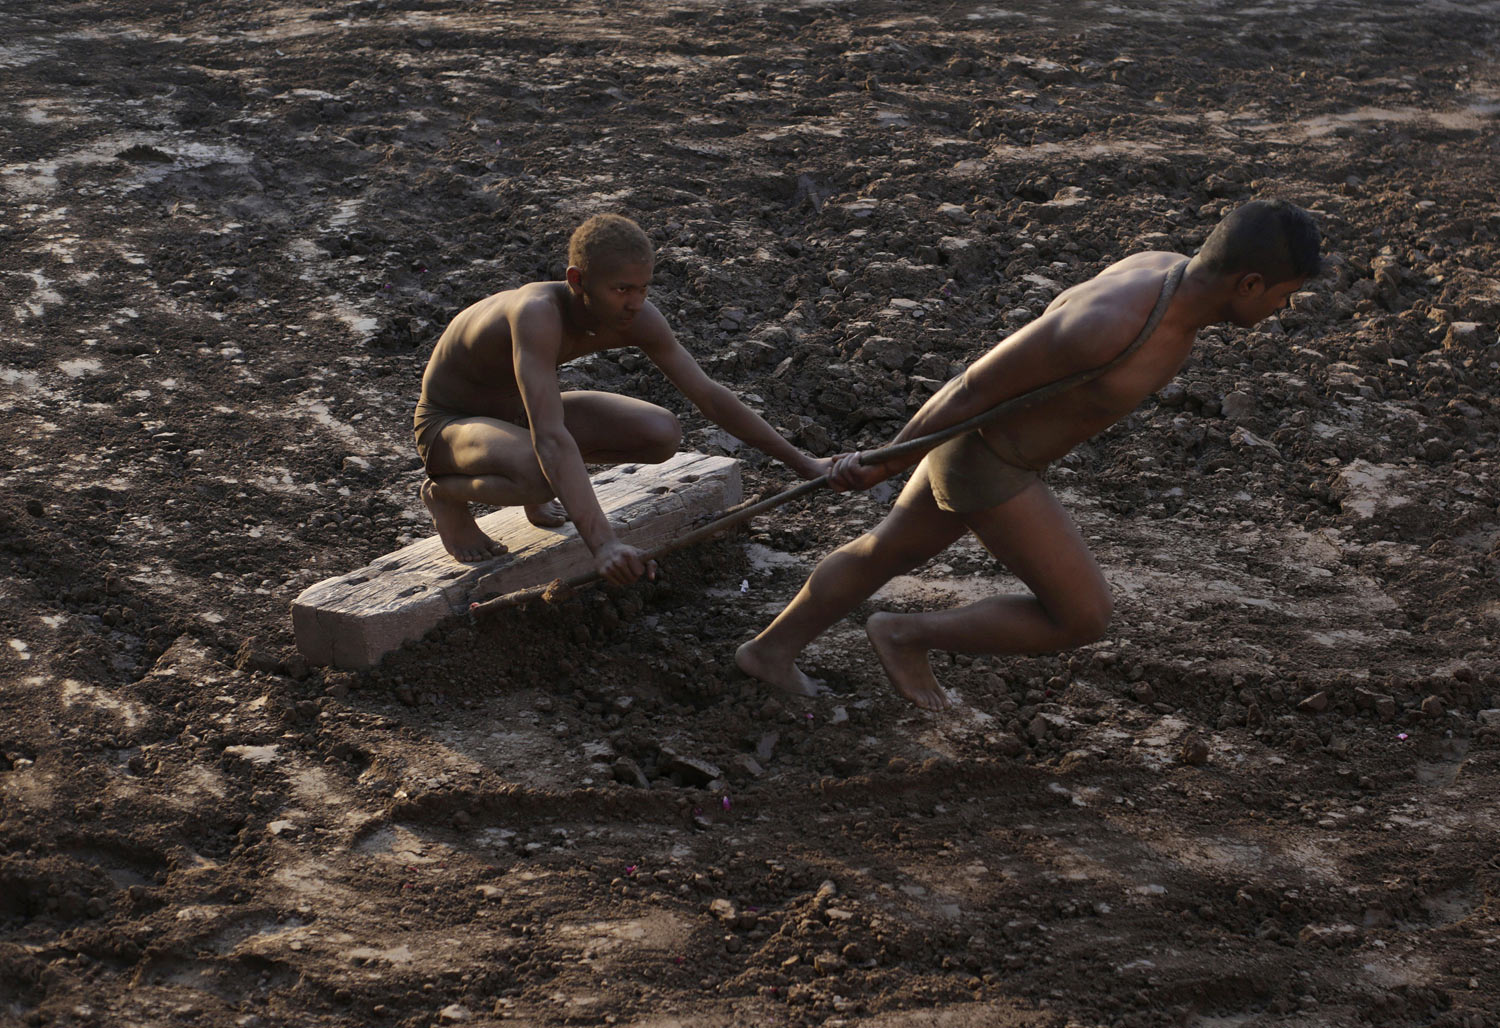 Wrestlers prepare the ground as part of their training for the national sport of Kushti, in Lahore, Pakistan, Monday, Jan. 28, 2019. Kushti, also known as Pehlwani, is a several thousand year-old sport and is practiced in the Indian subcontinent. The wrestlers train and compete on dirt floors, cleared of stones and dyed red. (AP Photo/K.M. Chaudary)